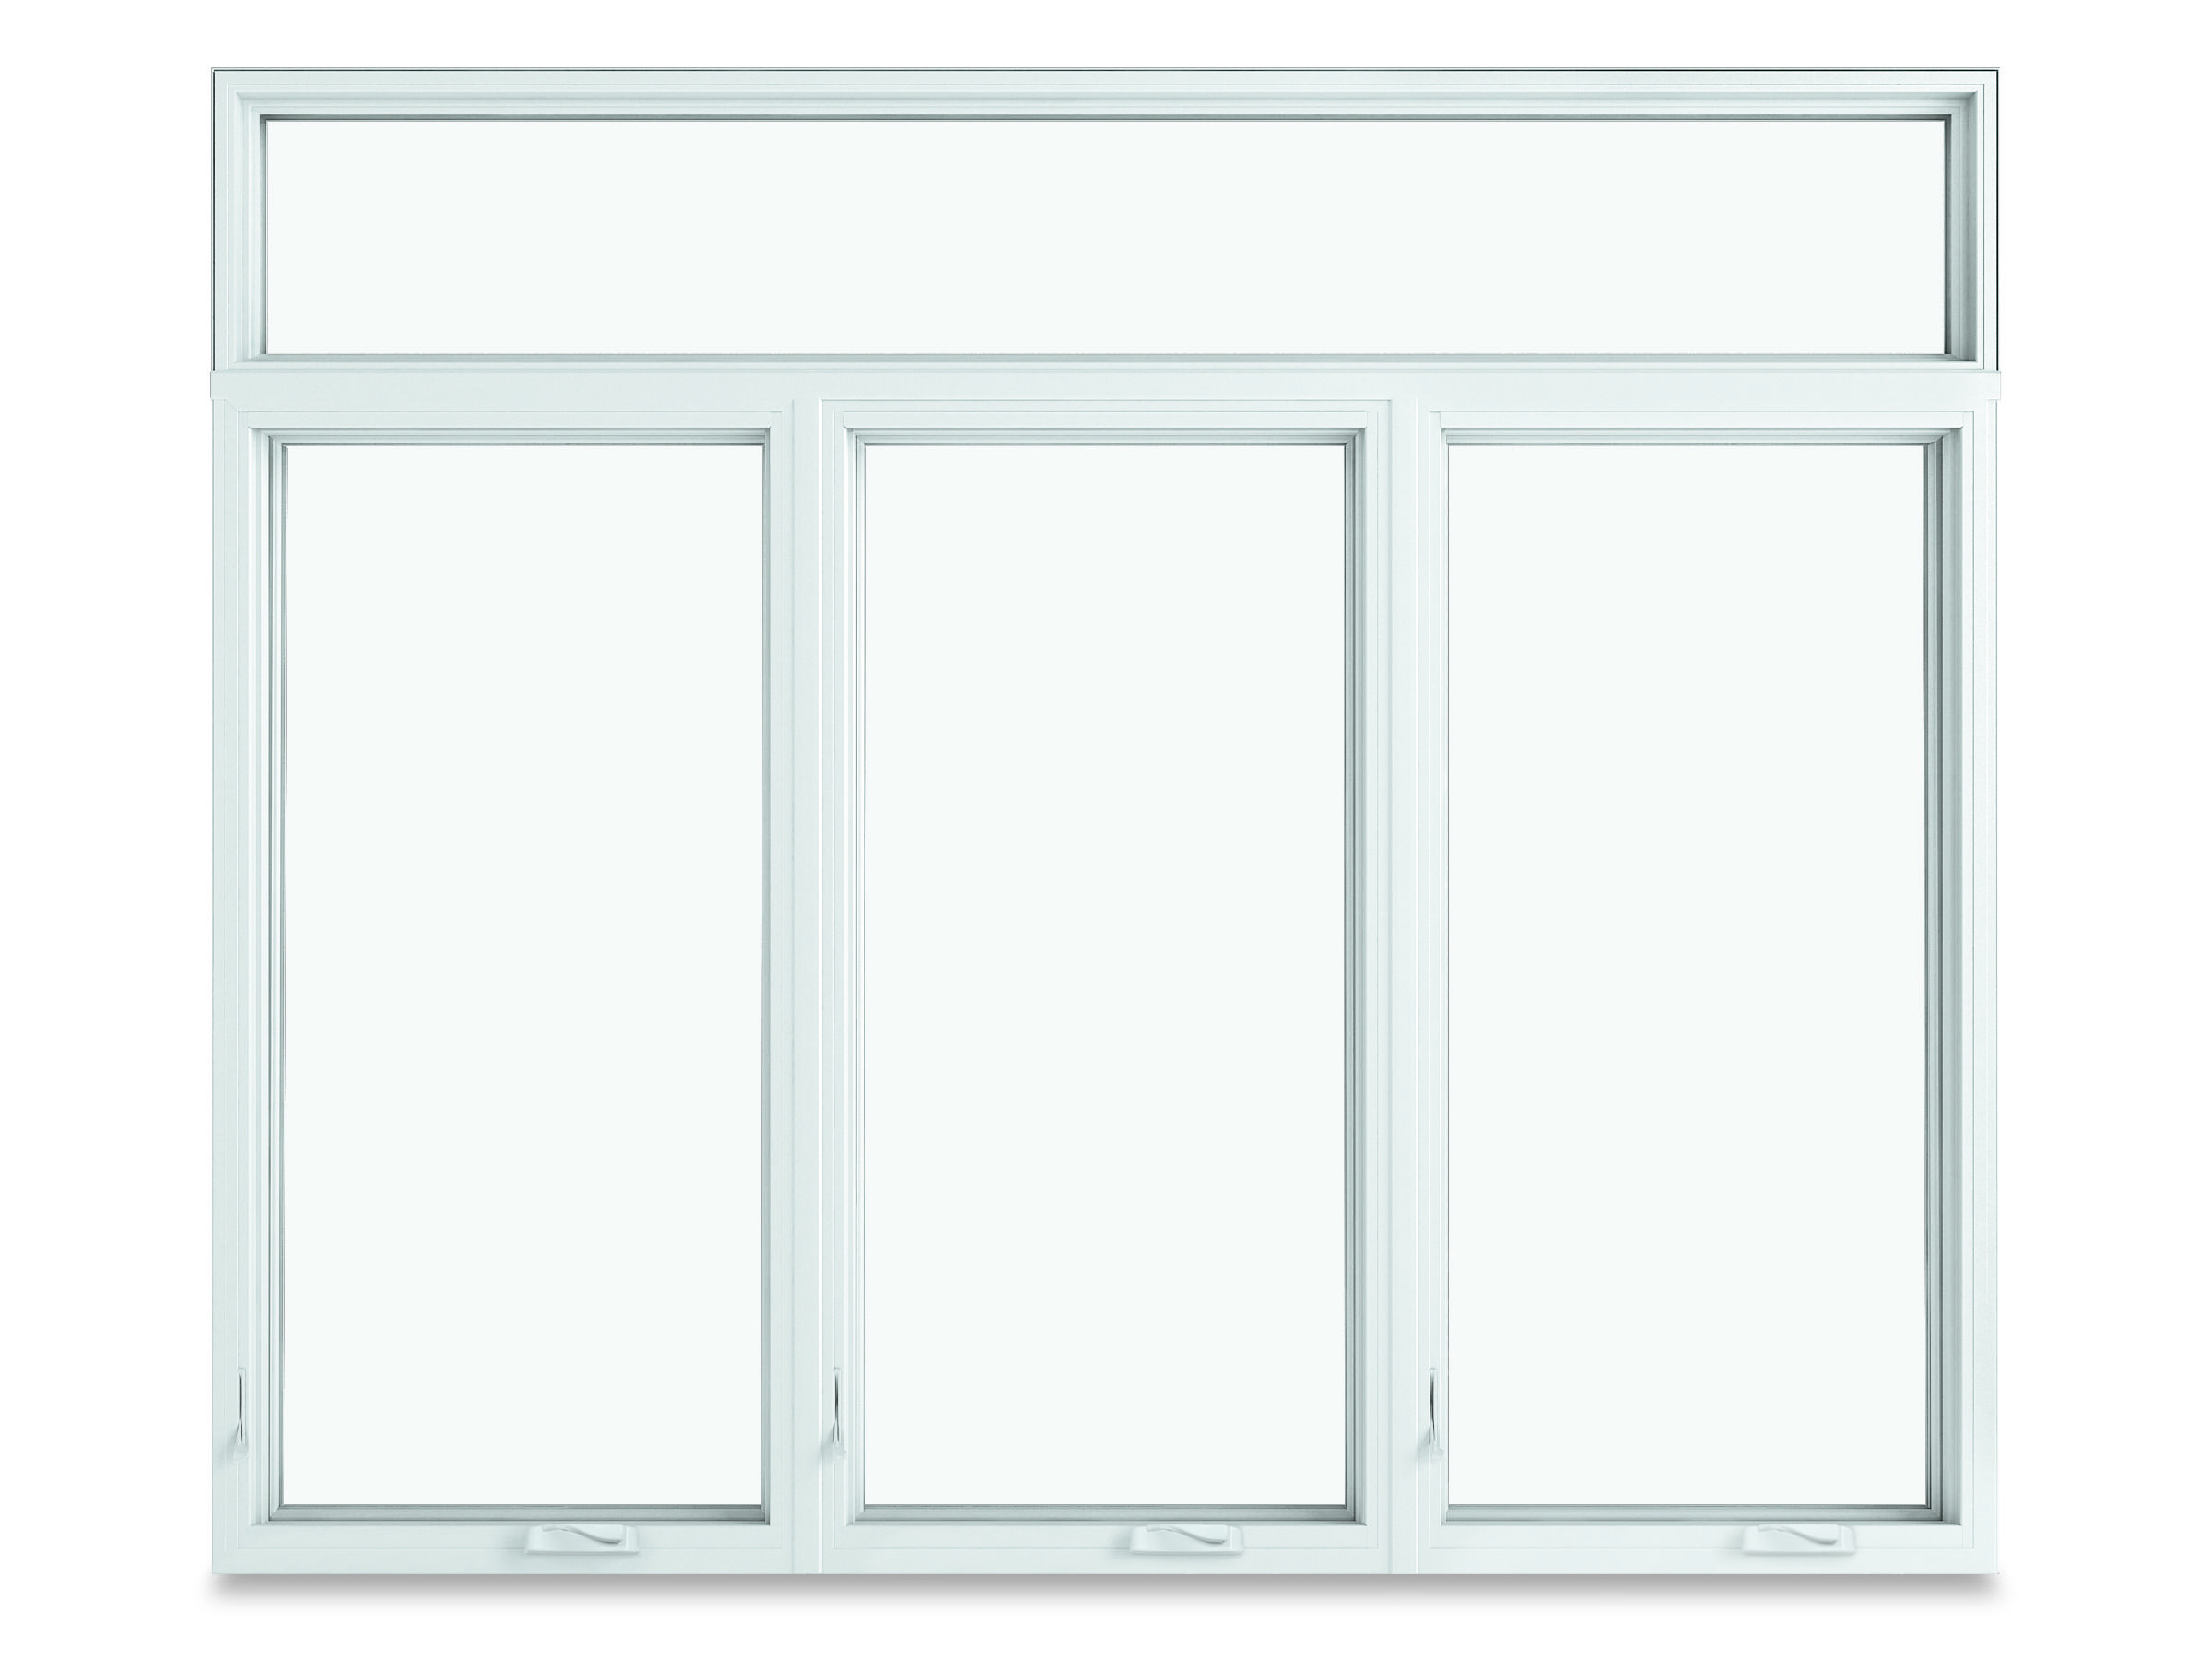 One Word Describes Infinity From Marvin Replacement Casements Easy They Are Easy To Choose Easy To Casement Windows Casement Replacement Casement Windows